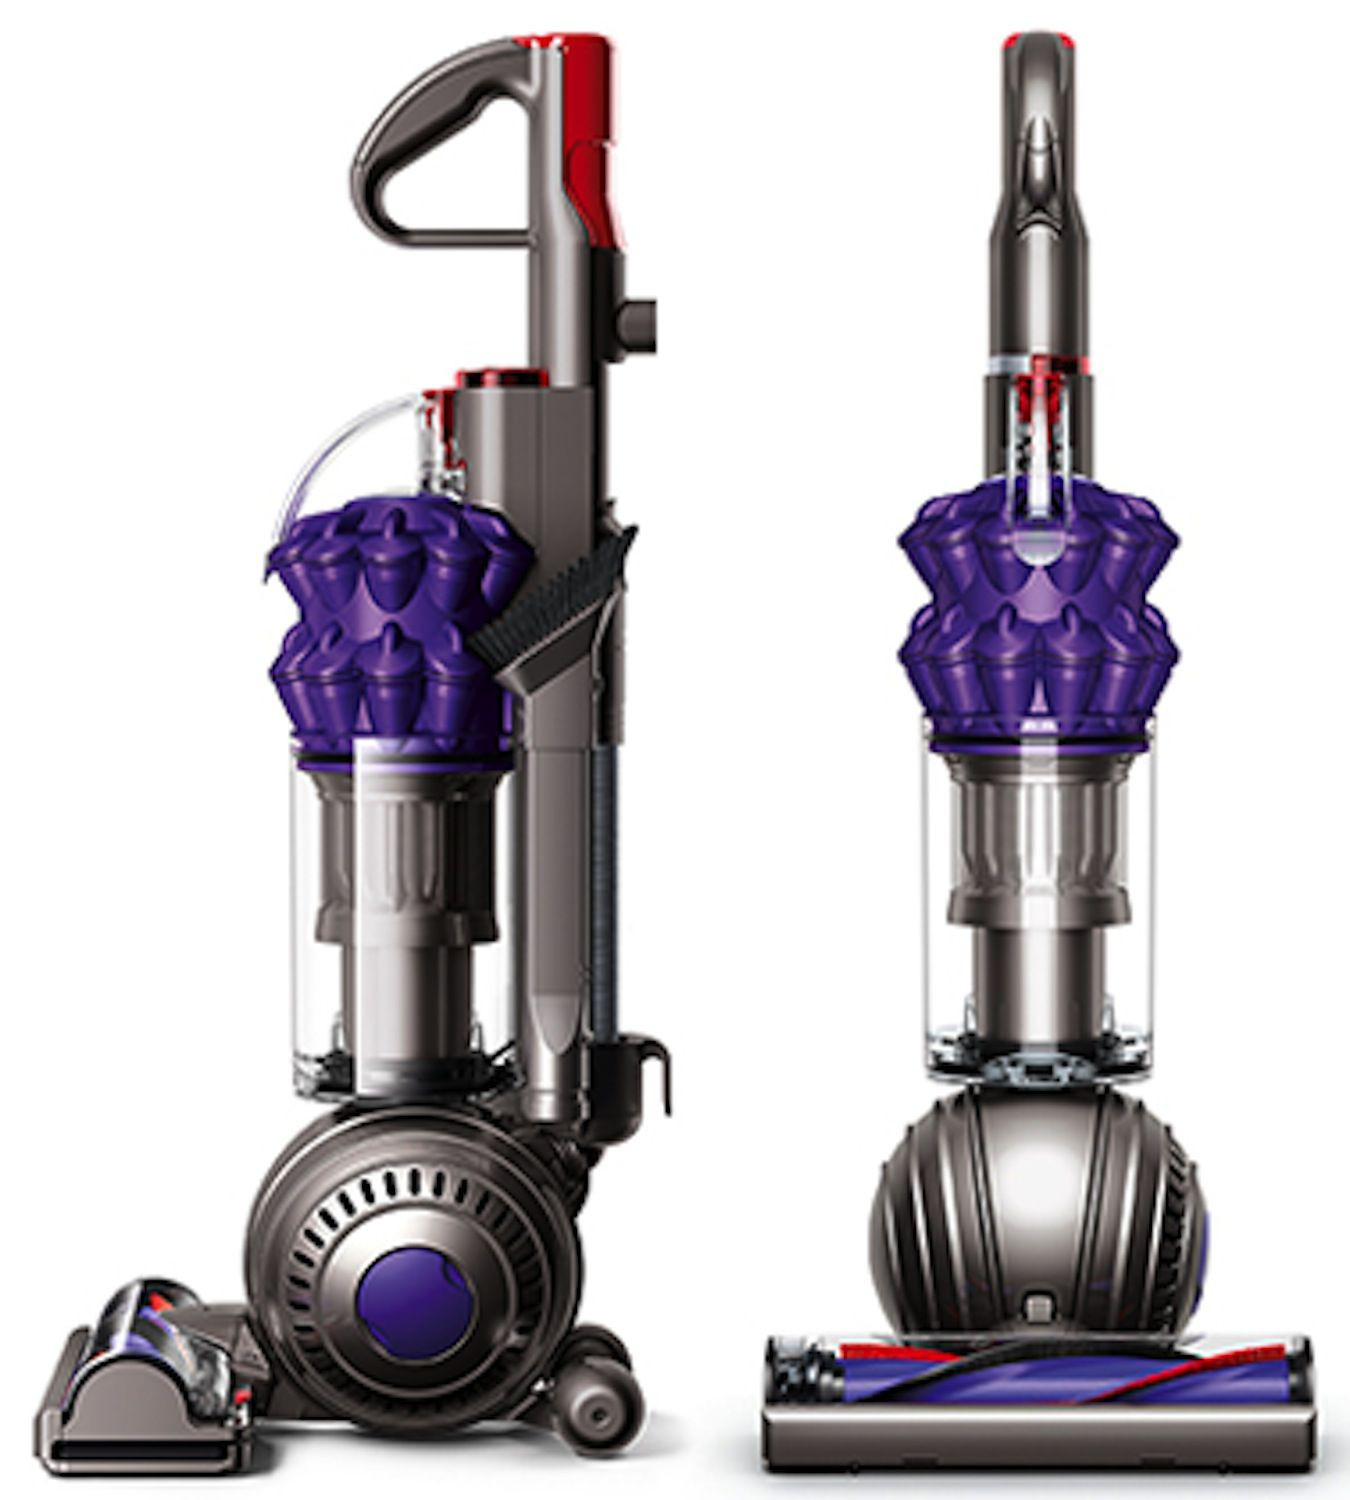 vacuum cleaner for pet hair on hardwood floors of great vacuum cleaners for arthritis patients throughout hero upright dyson ball compact animal 56969aef3df78cafda8f0816